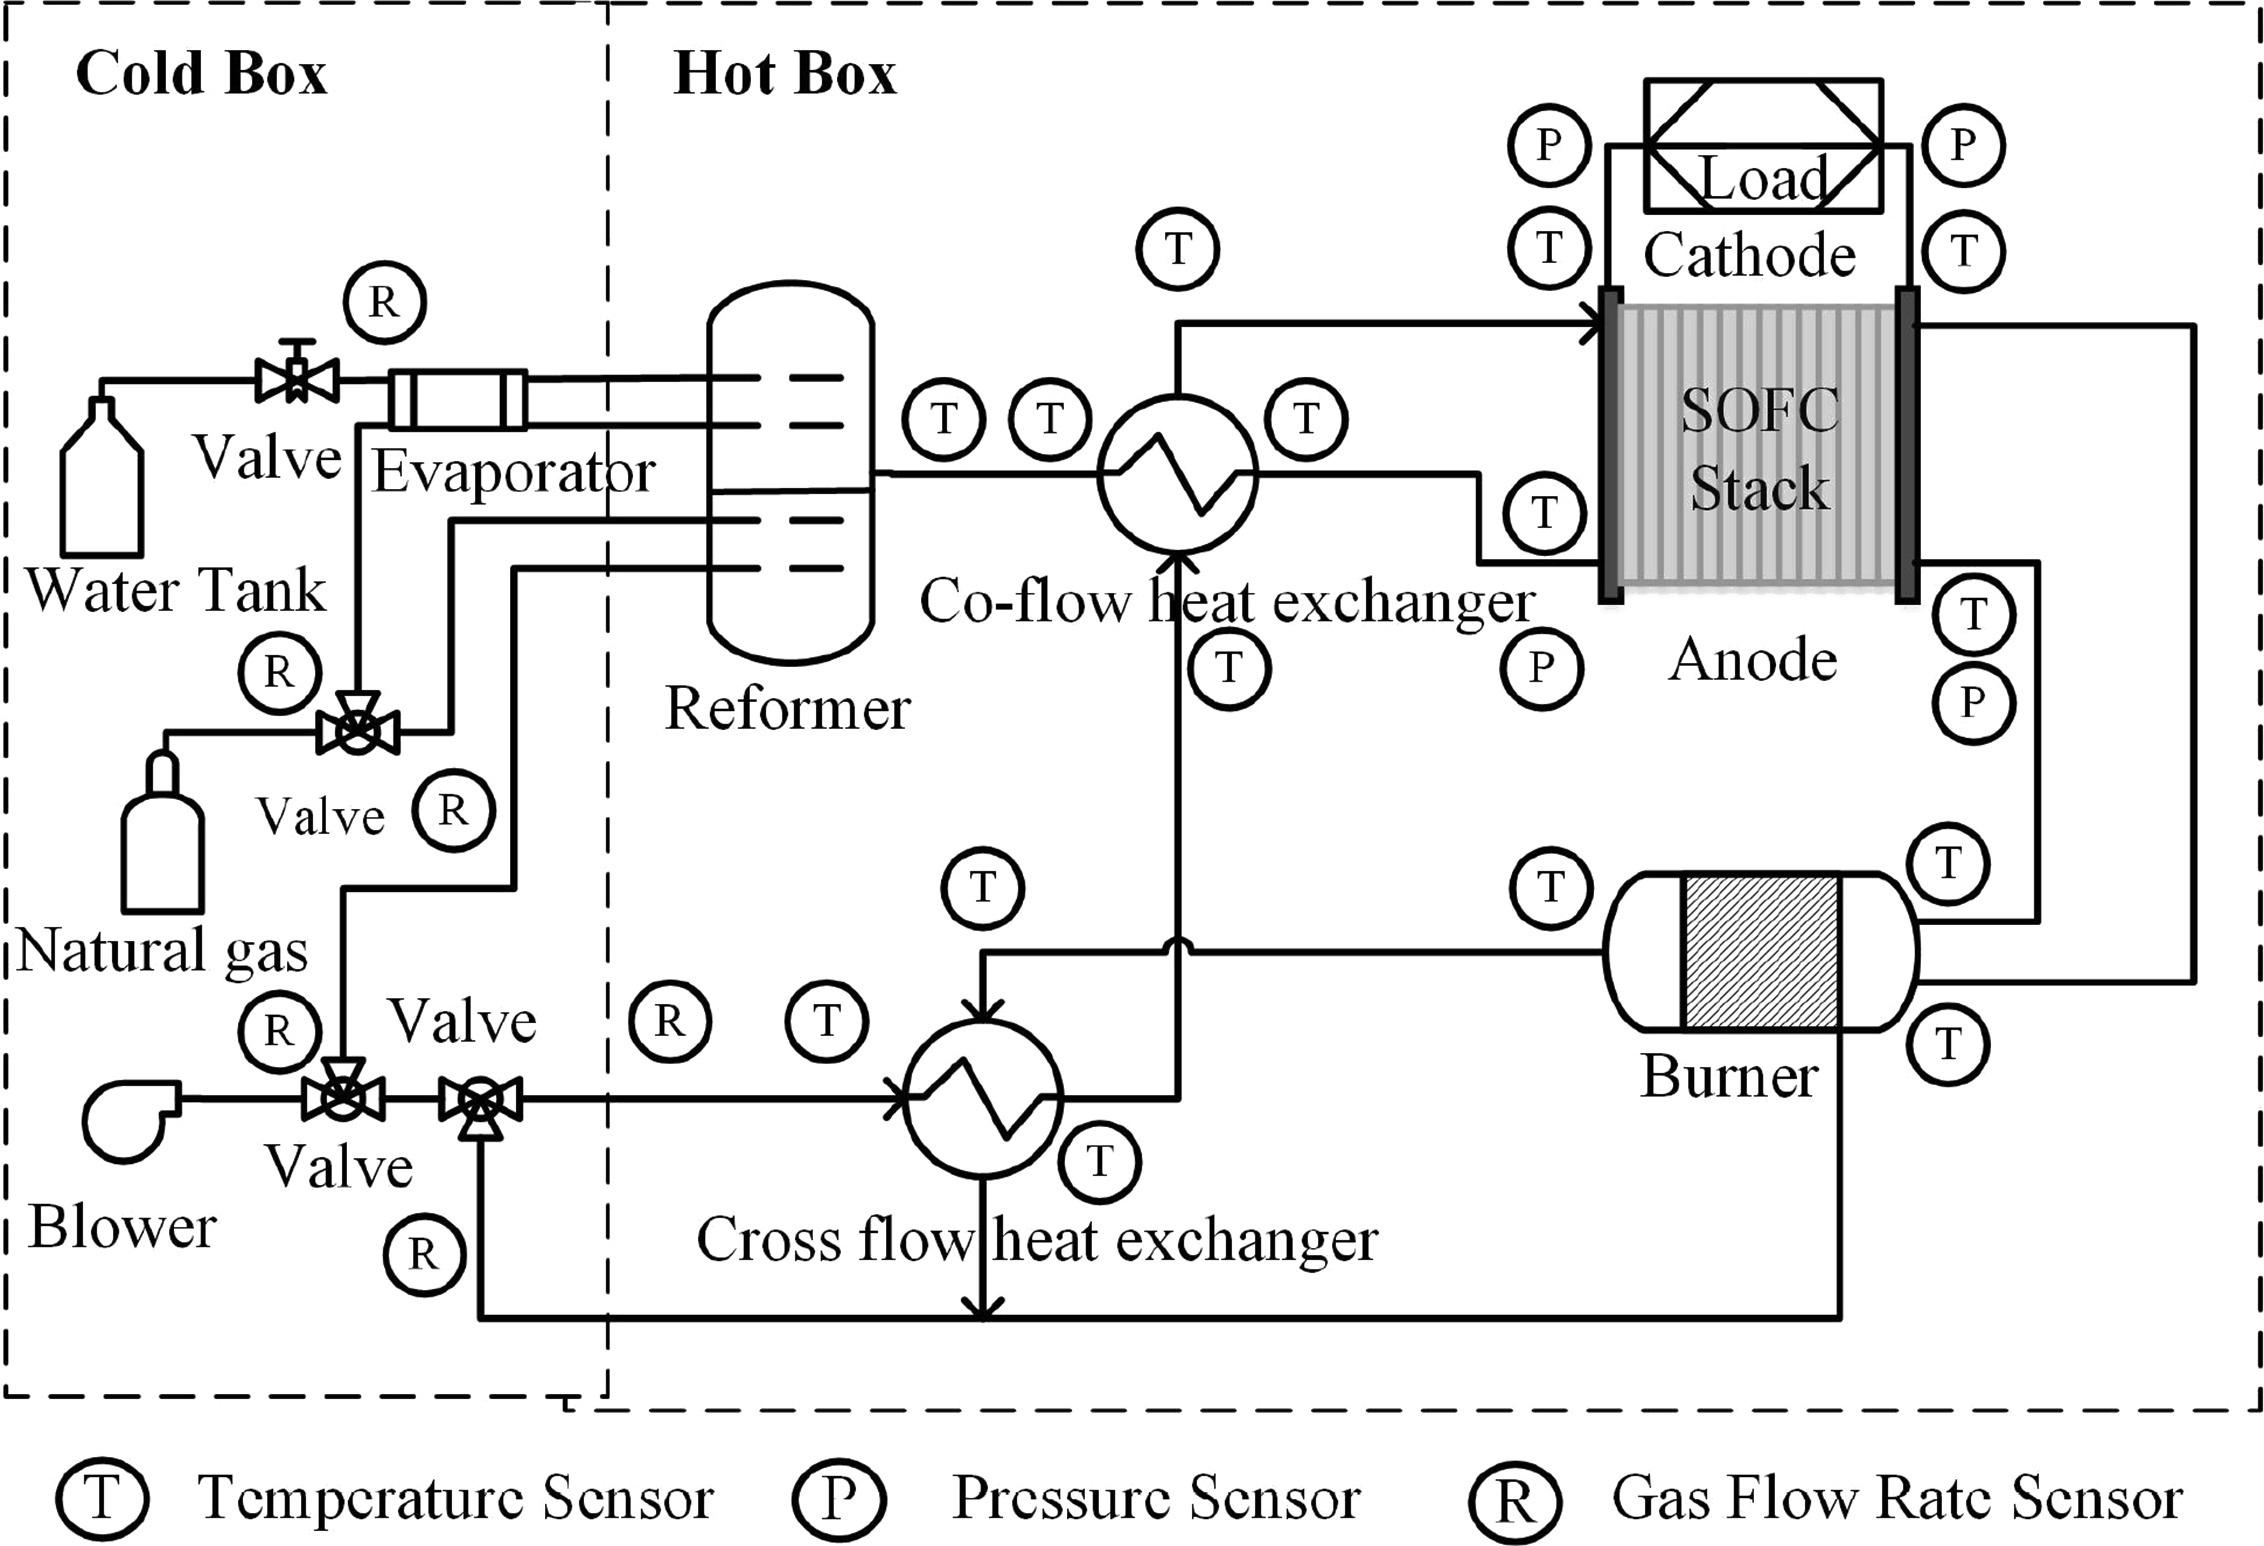 fault-tolerant control for steam fluctuation in sofc system with reforming units